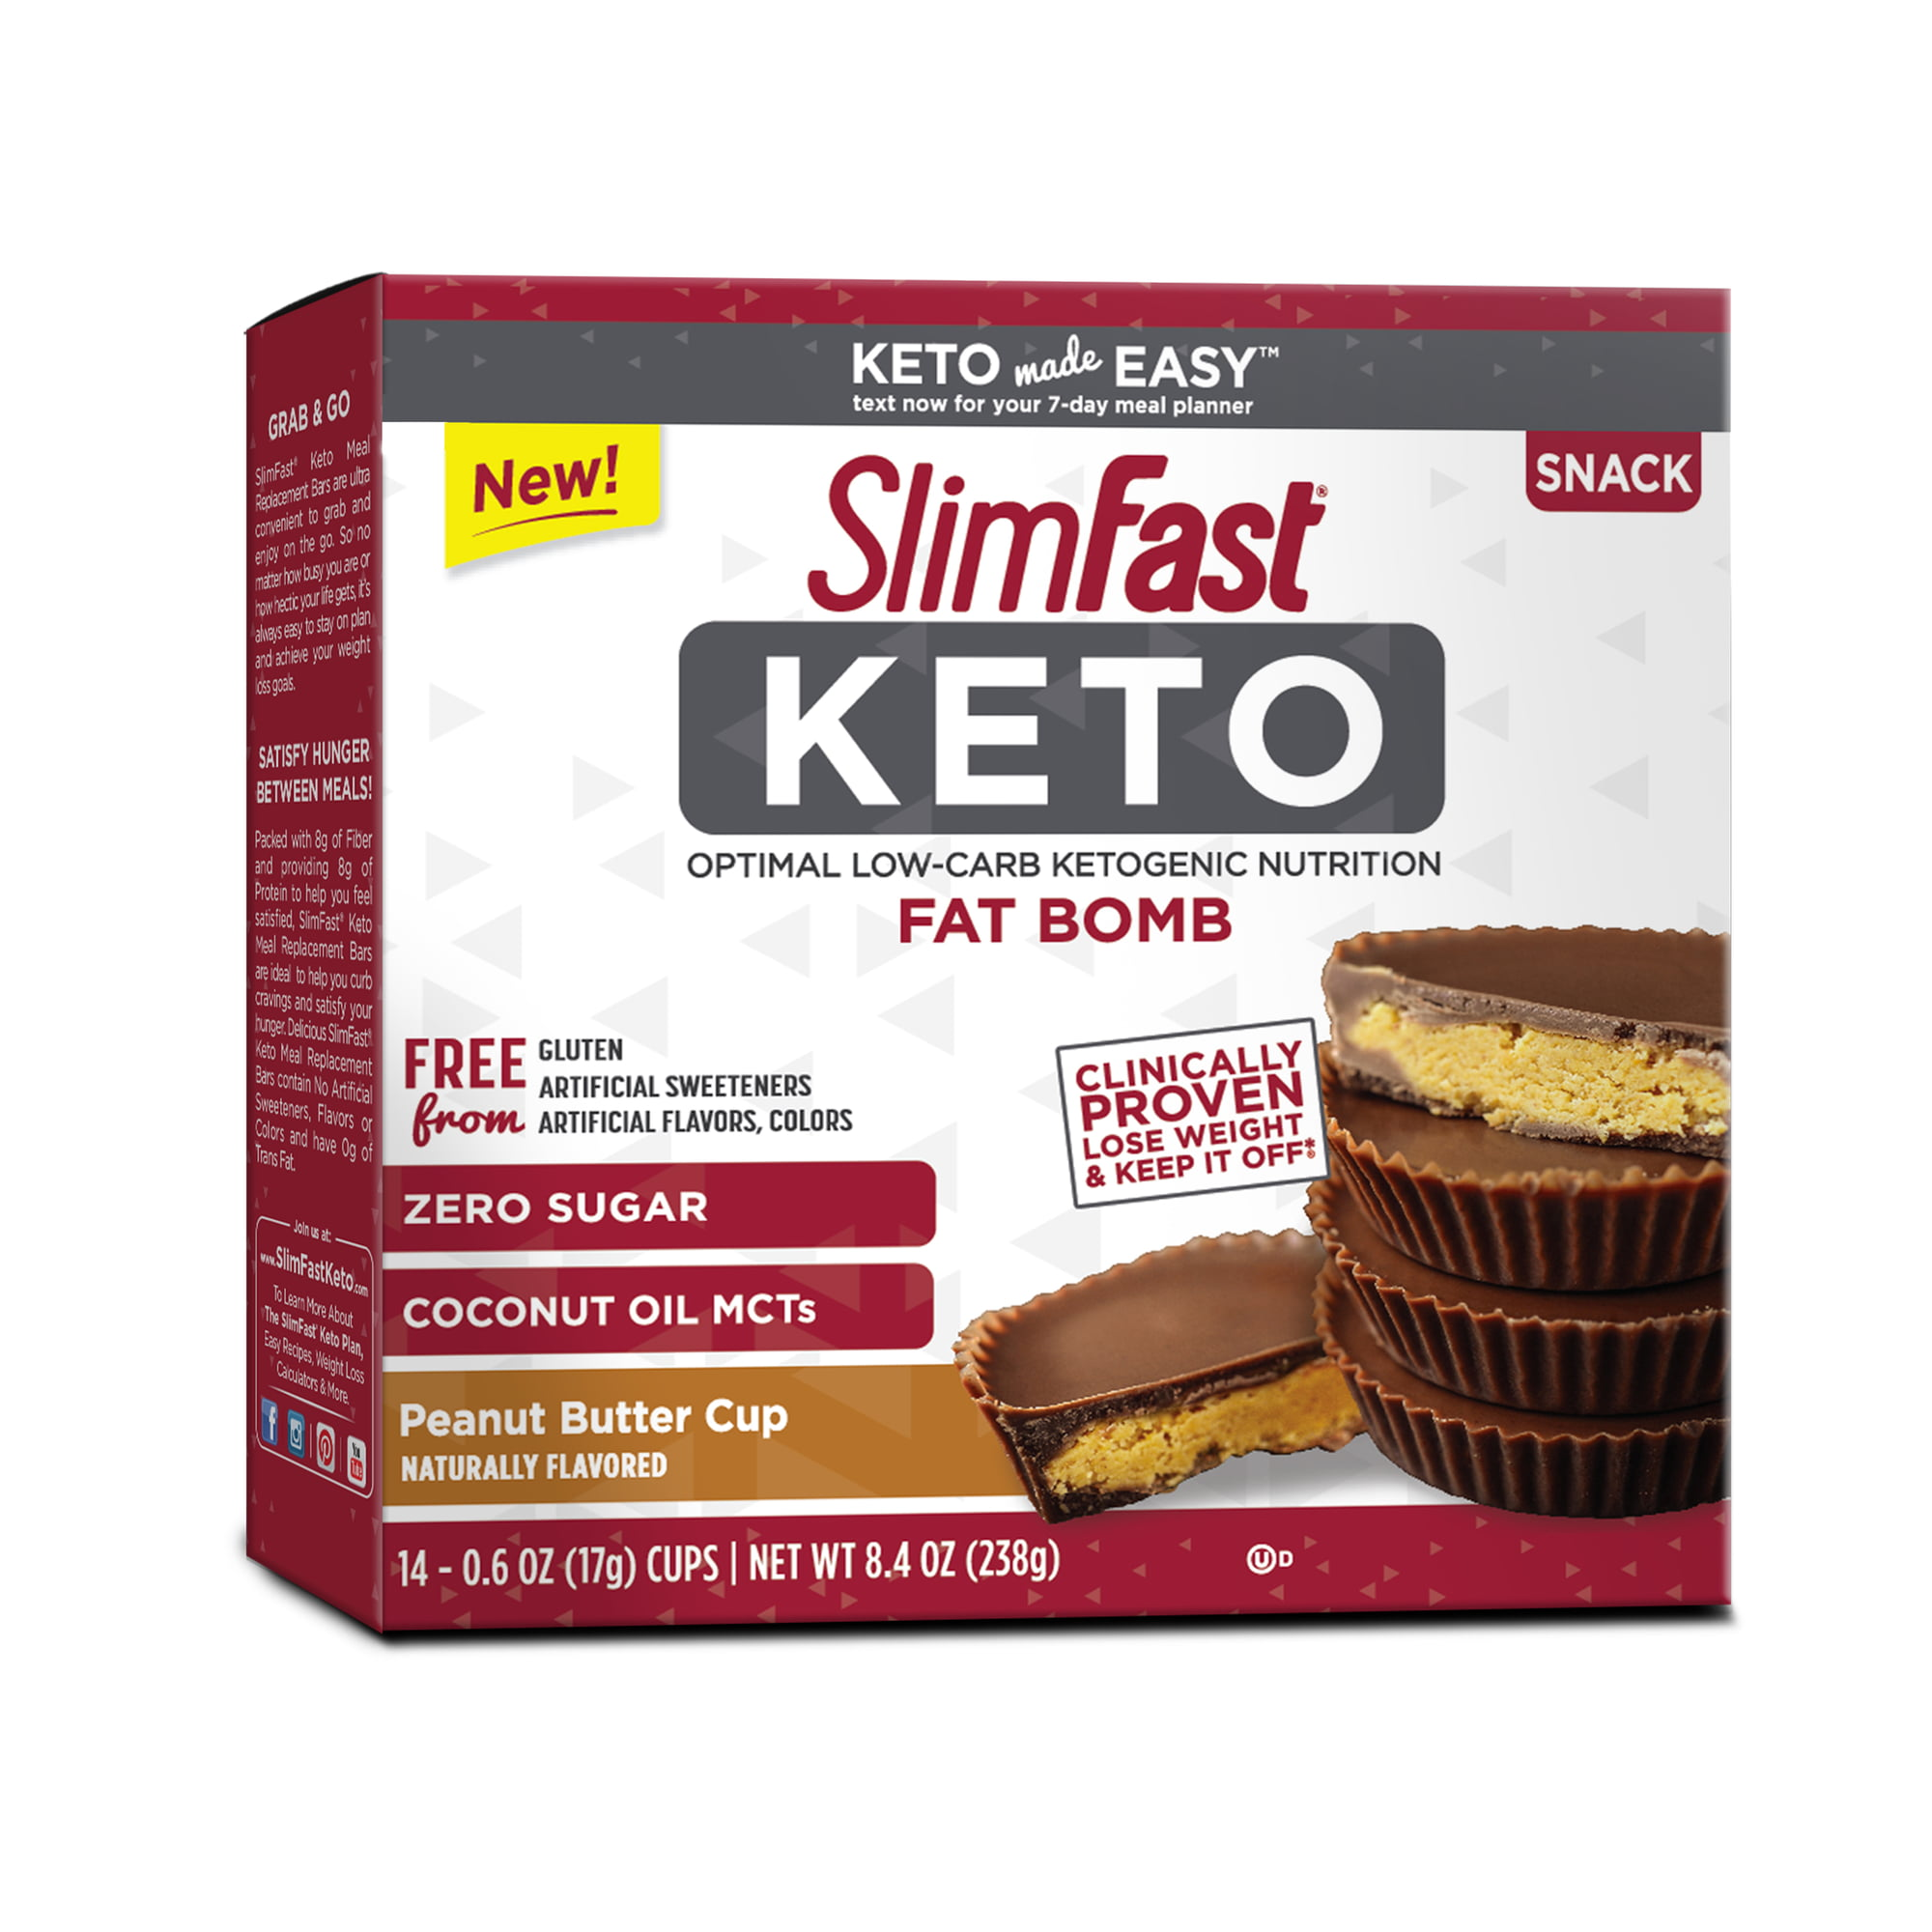 Astounding Slimfast Keto Fat Bomb Snacks Peanut Butter Cups 0 6 Oz 14 Count Walmart Com Cjindustries Chair Design For Home Cjindustriesco